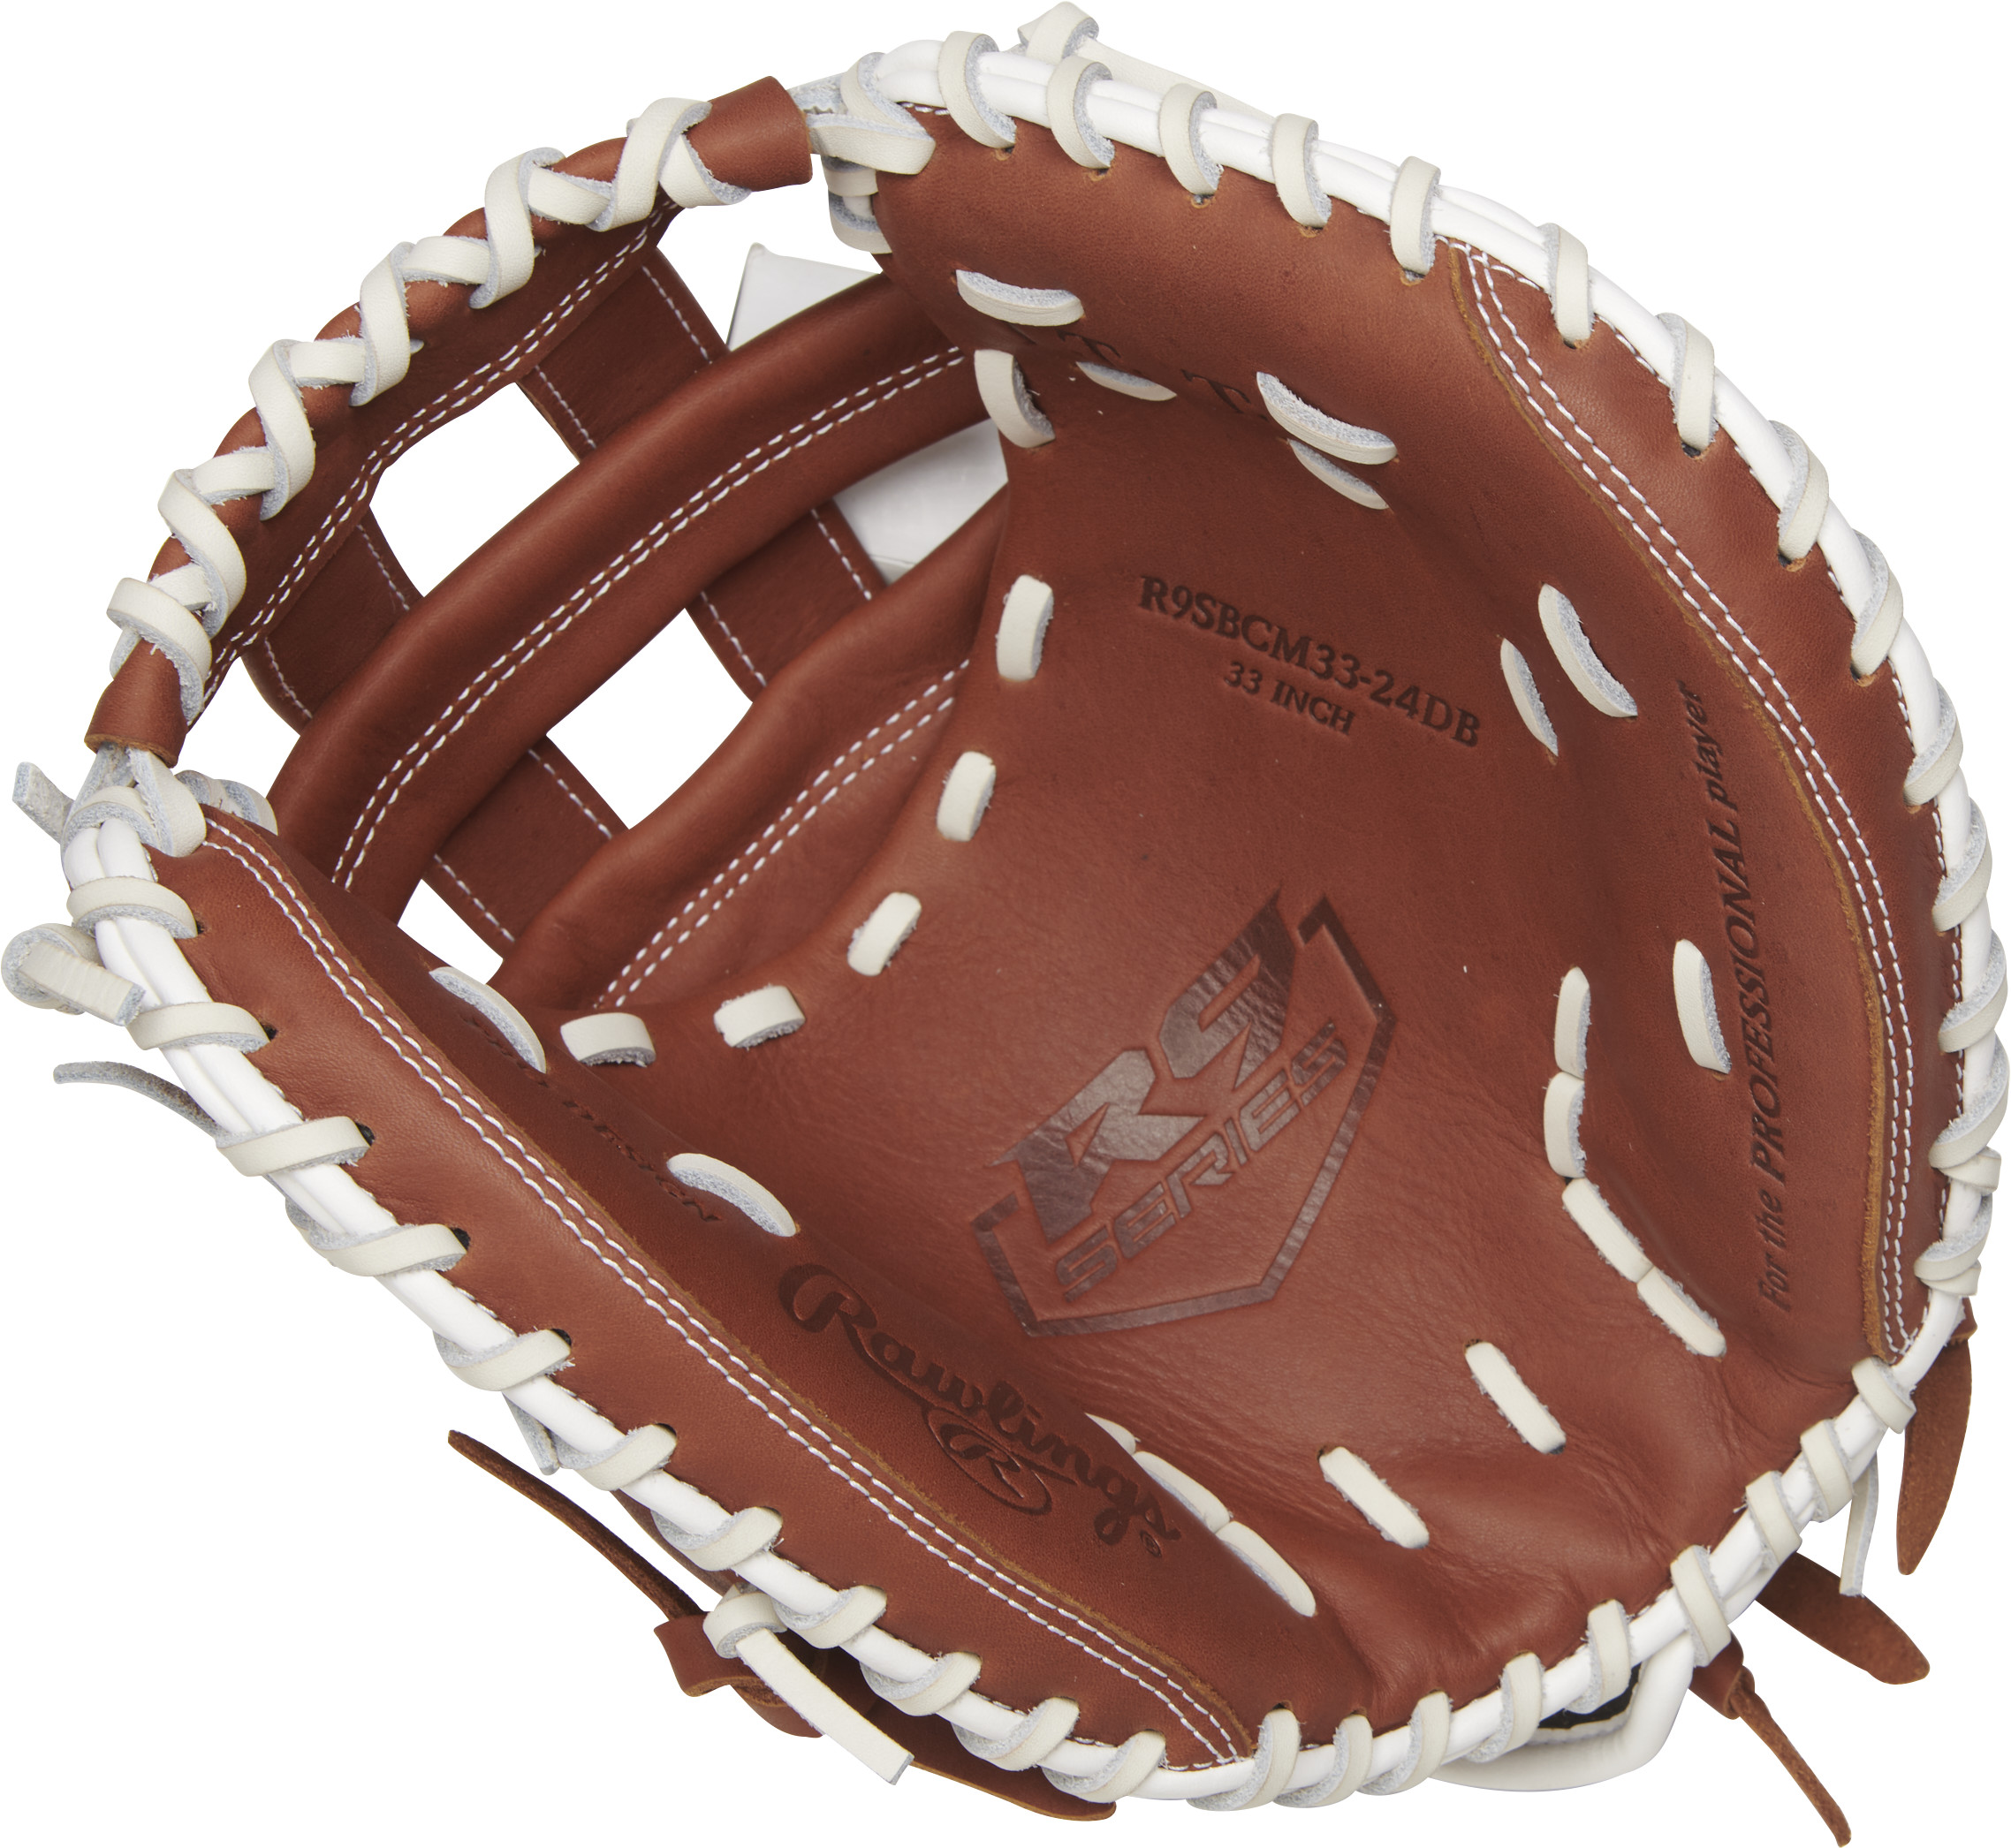 http://www.bestbatdeals.com/images/gloves/rawlings/R9SBCM33-24DB-1.jpg